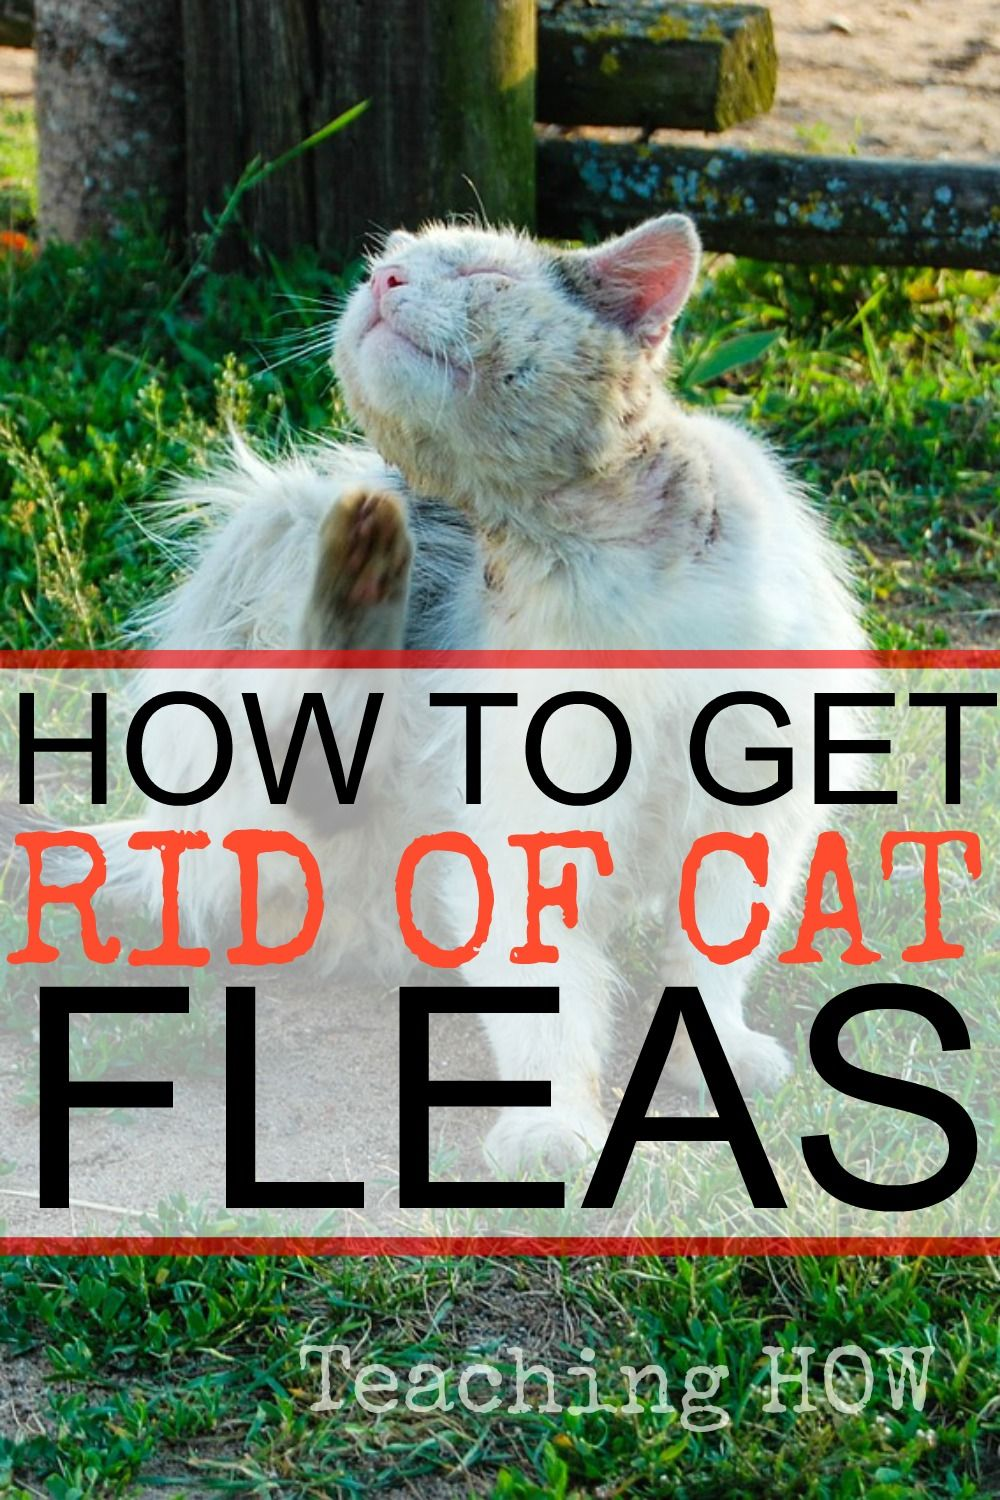 How To Get Rid Of Cat Fleas... Because for how to tips - Click on the following link!  http://www.teachinghow.com/how-to-get-rid-of-cat-fleas/